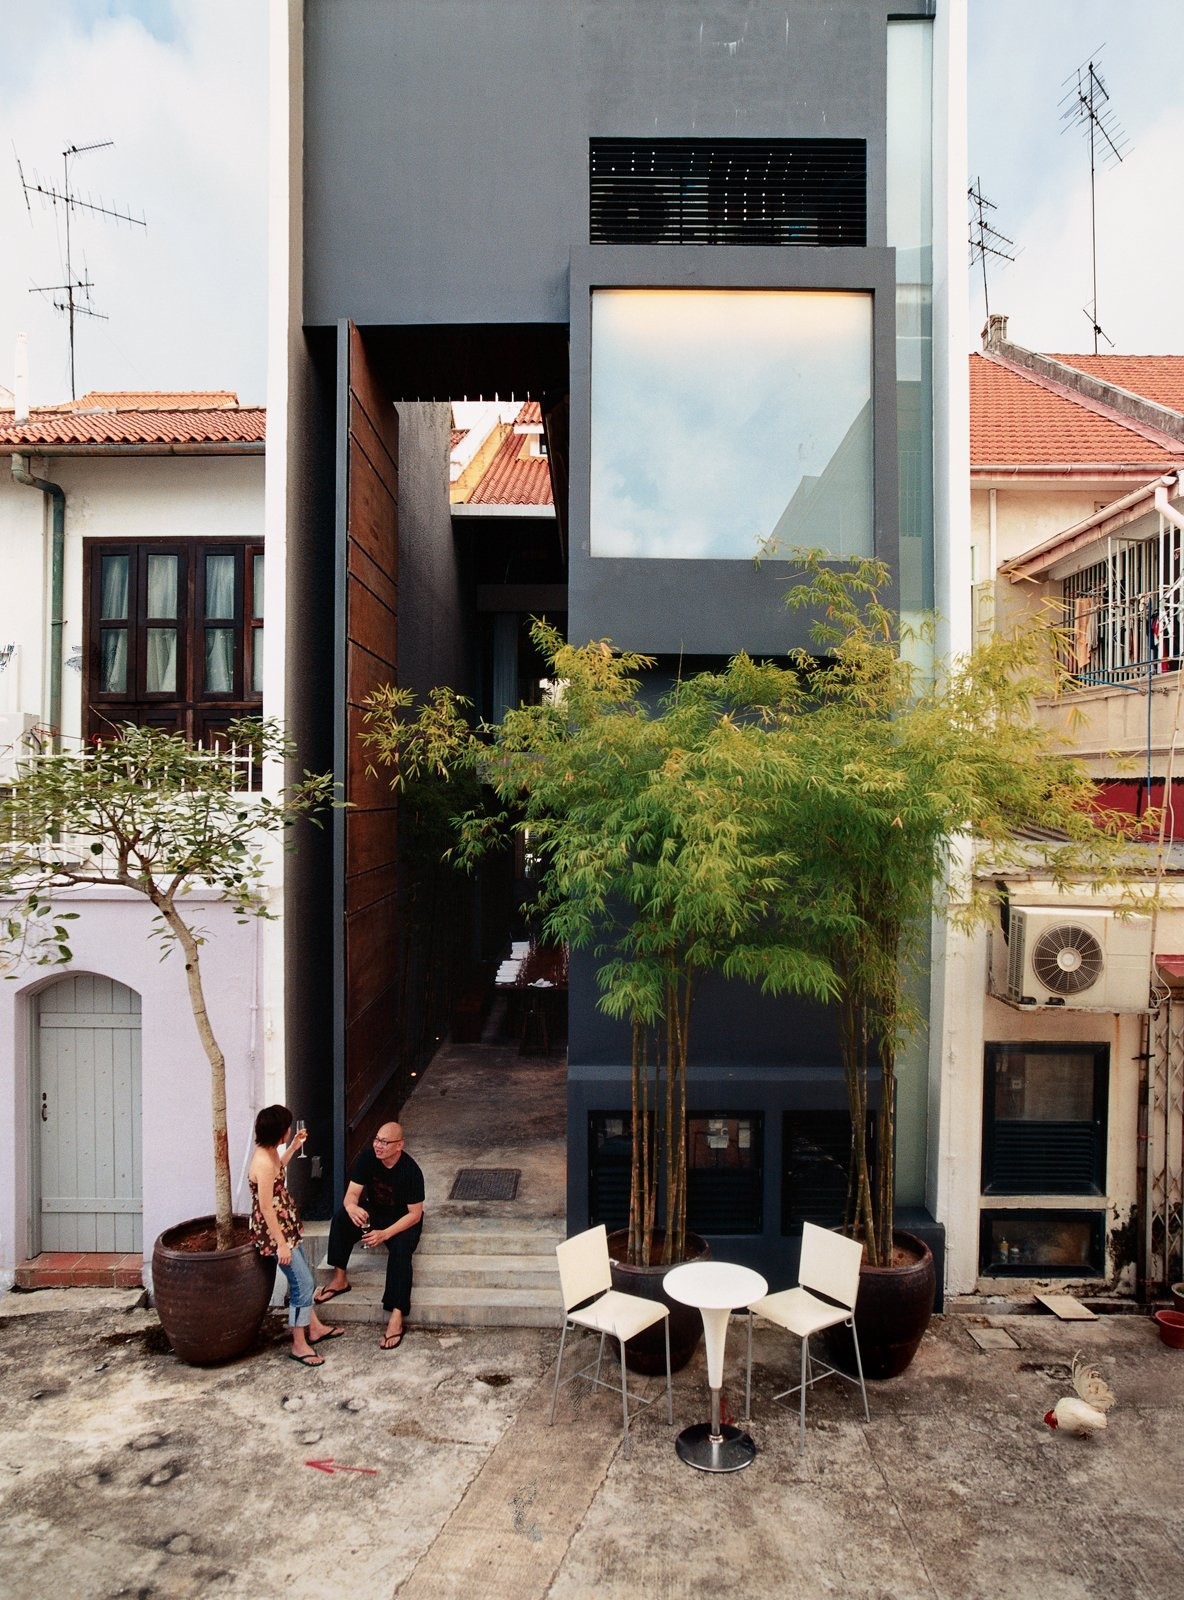 Exterior and House Building Type Behind an unassuming 19th-century facade in Singapore's Joo Chiat neighborhood, Ching Ian and Yang Yeo's renovation of a typical shophouse venerates tradition while looking squarely to the future. Photo by Richard Powers  Photos from Modern Renovations of 19th Century Homes